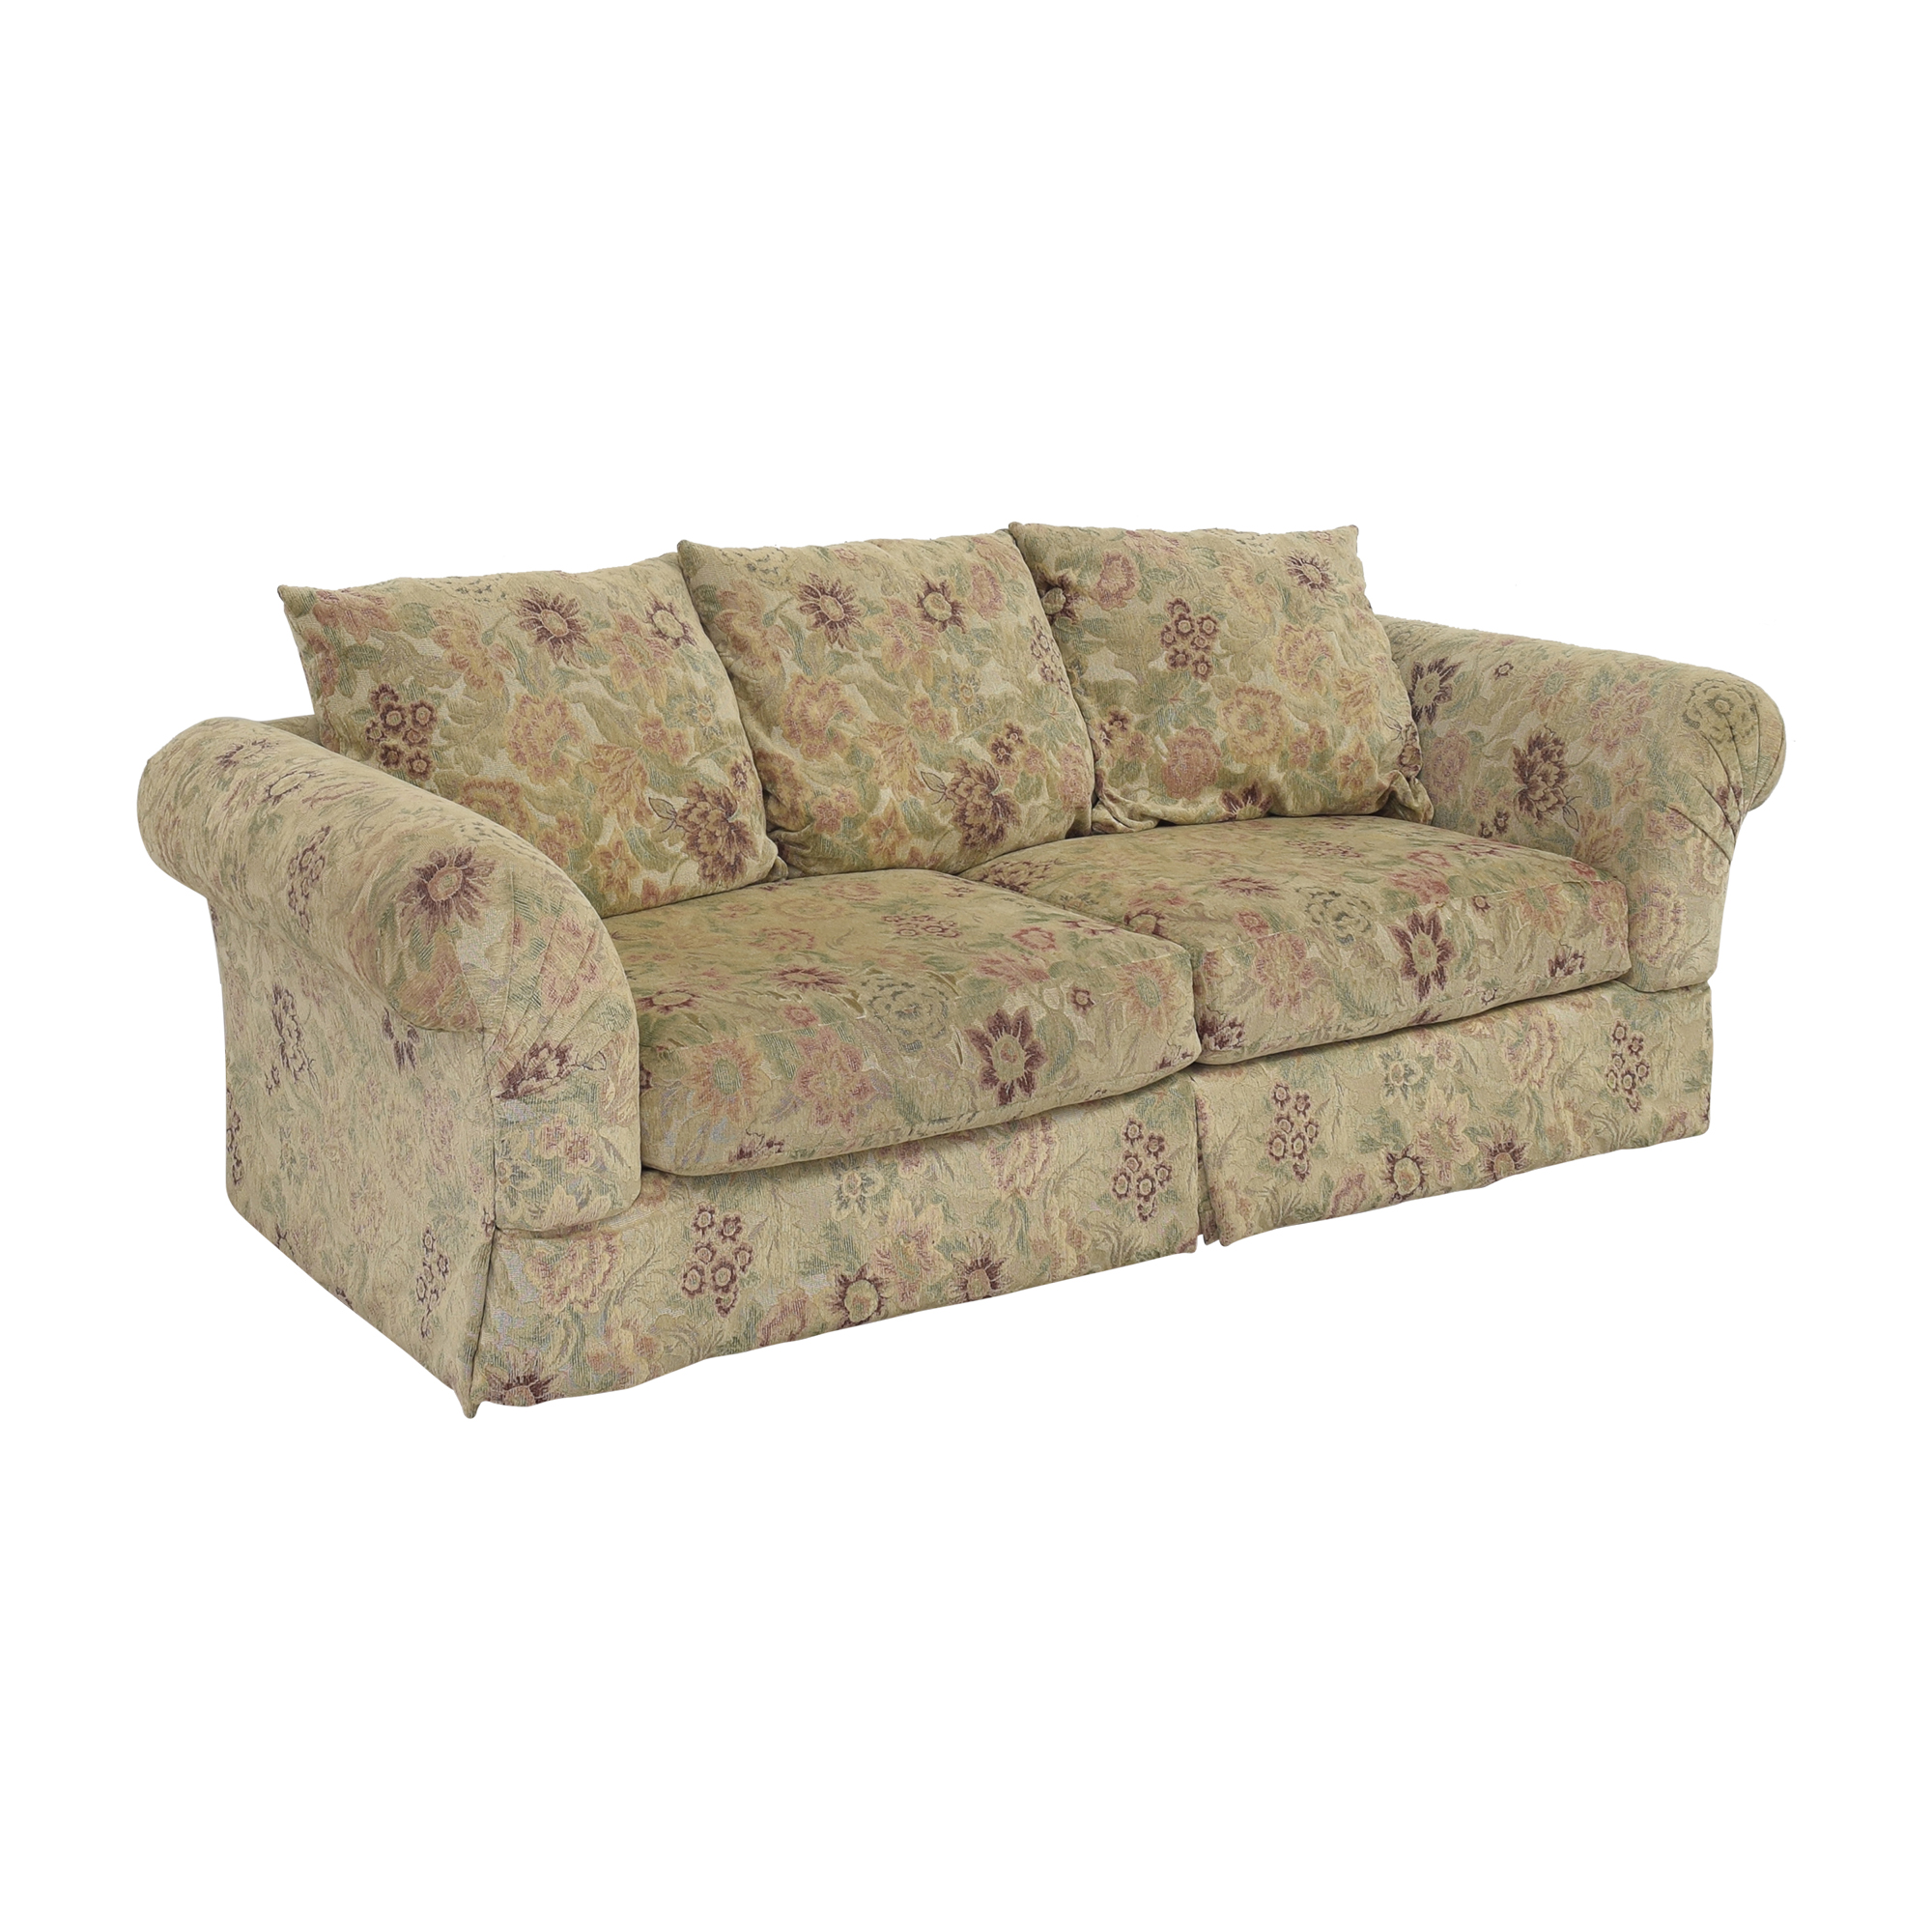 Sealy Sealy Floral Sofa by Klaussner discount